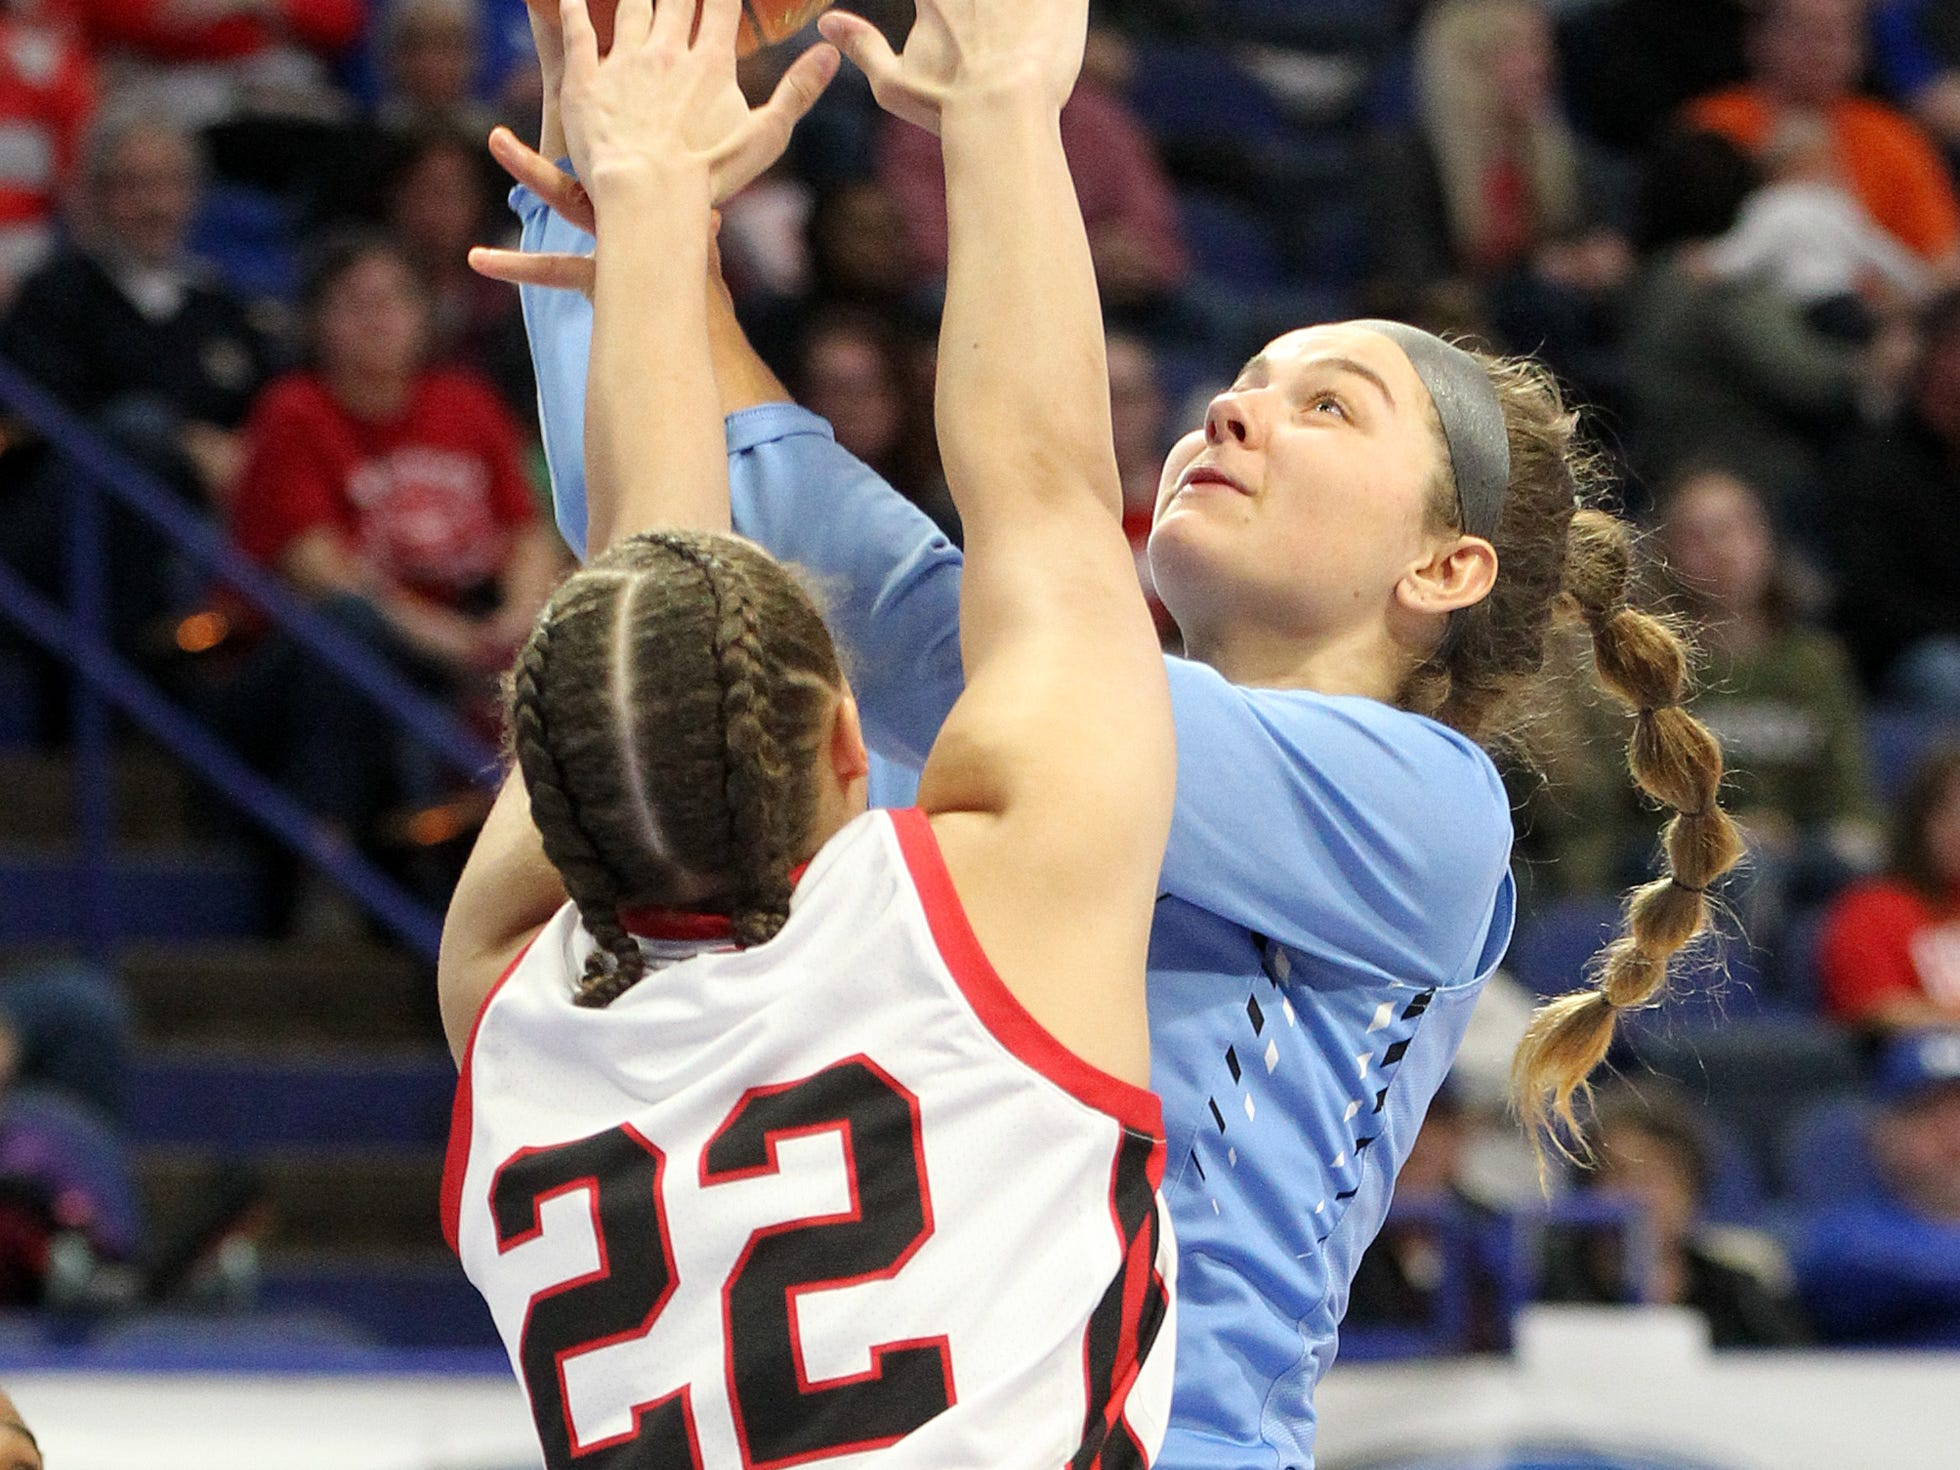 Mercy's Paige Taylor, right, shoots while pressured by George Rogers Clark's Tyra Flowers (22) in their opening round game at the KHSAA Girl's Sweet 16, Wednesday, March 13. George Rogers Clark won 65-64.